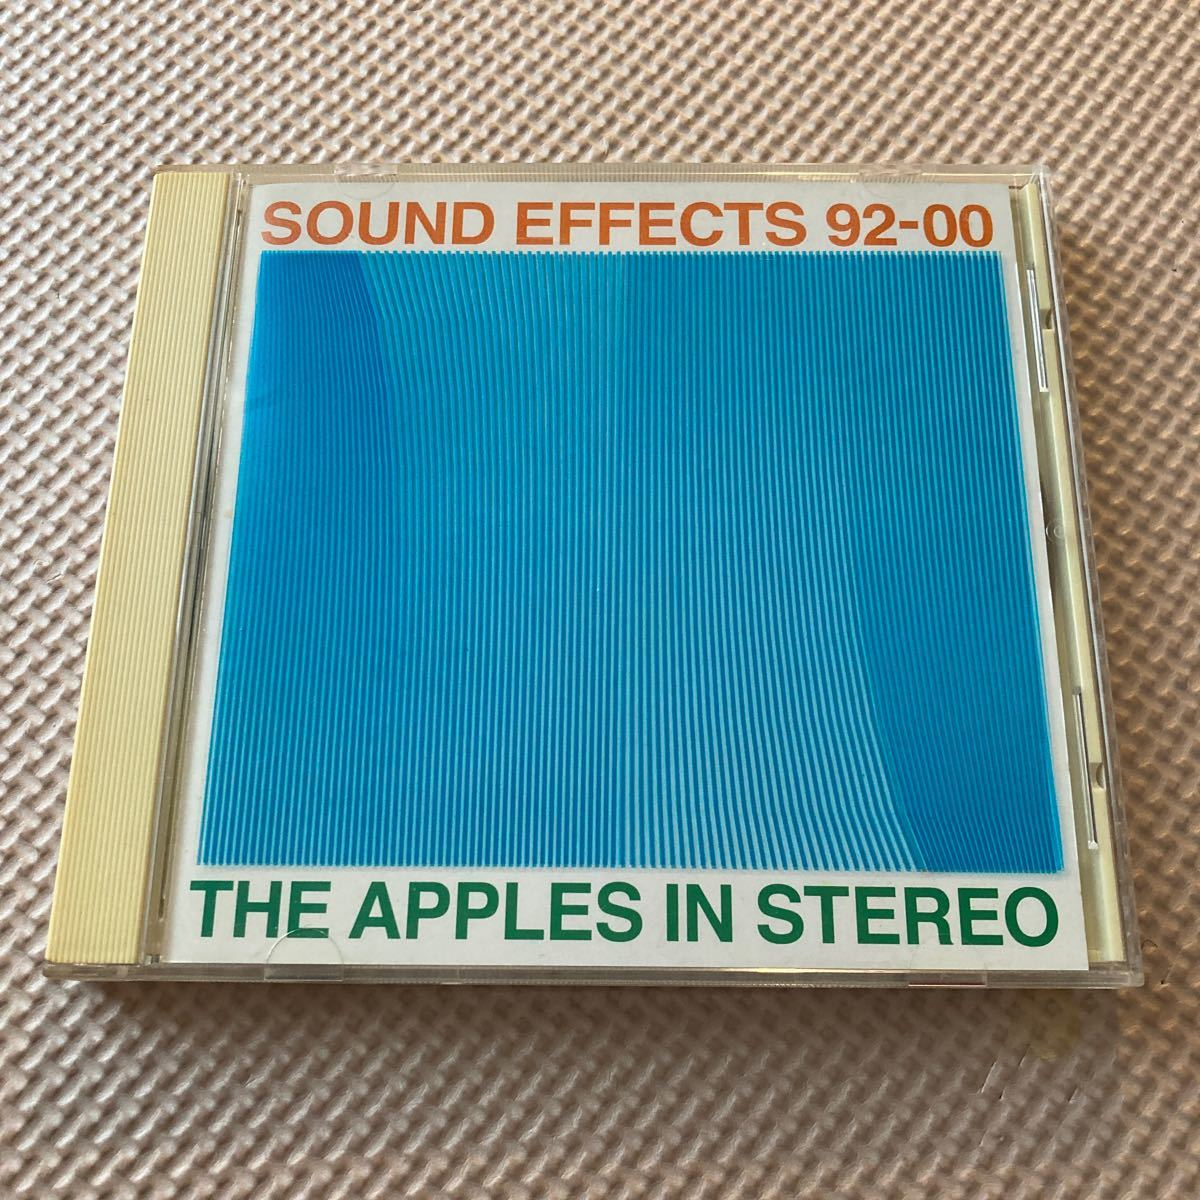 THE APPLES IN STEREO SOUND EFFECTS92-00